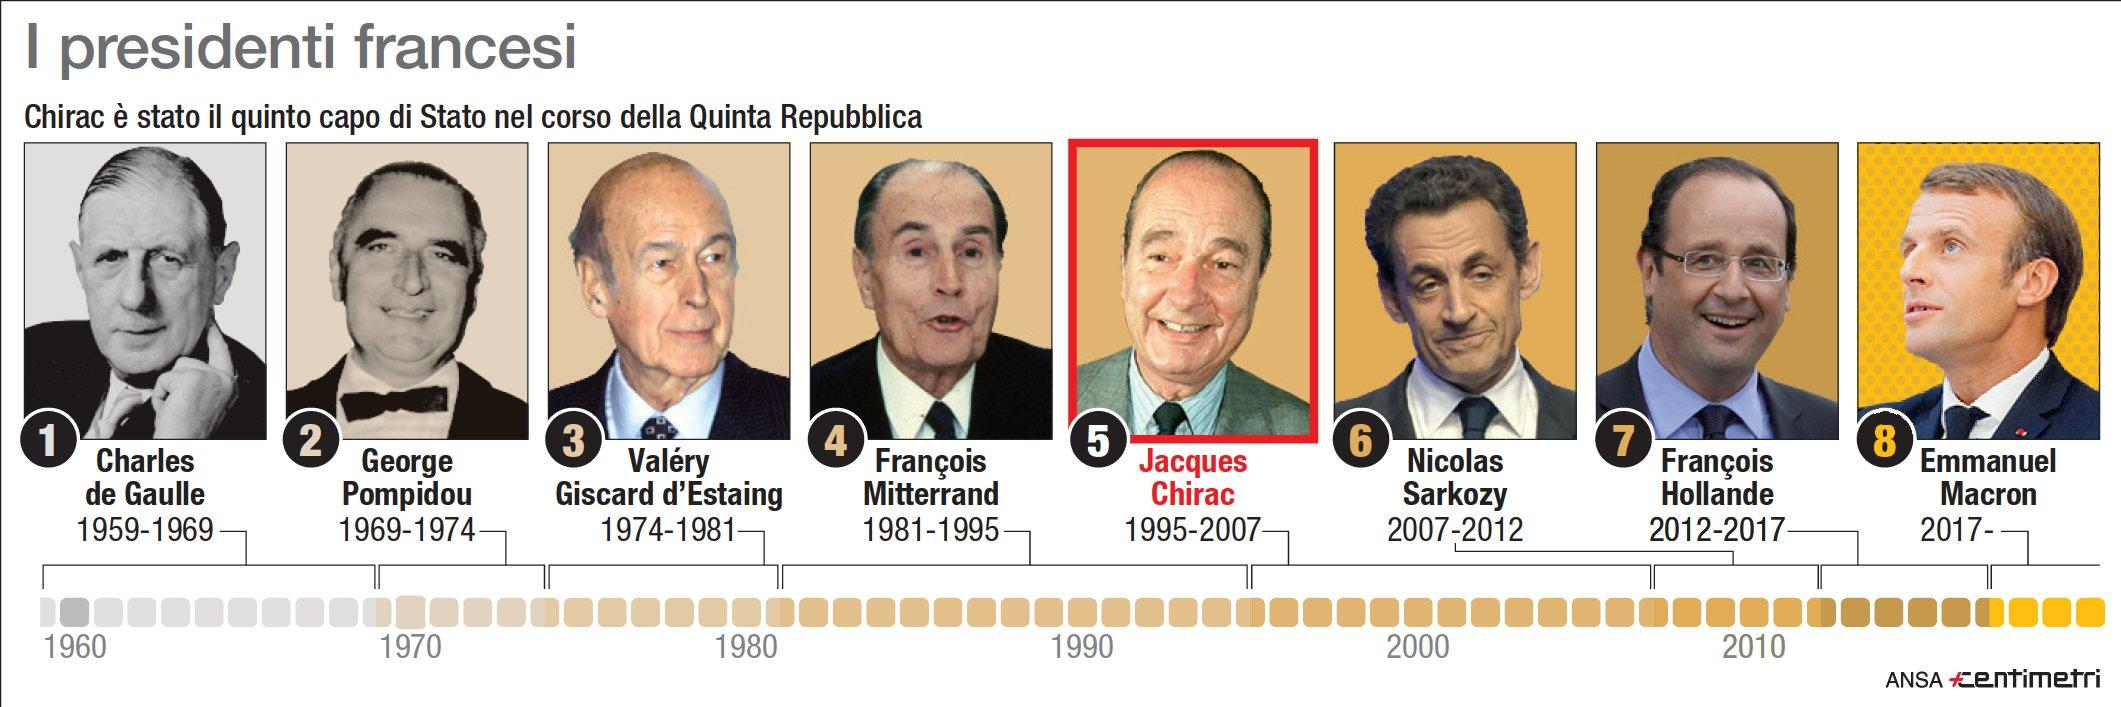 Addio a Jacques Chirac: quinto presidente francese